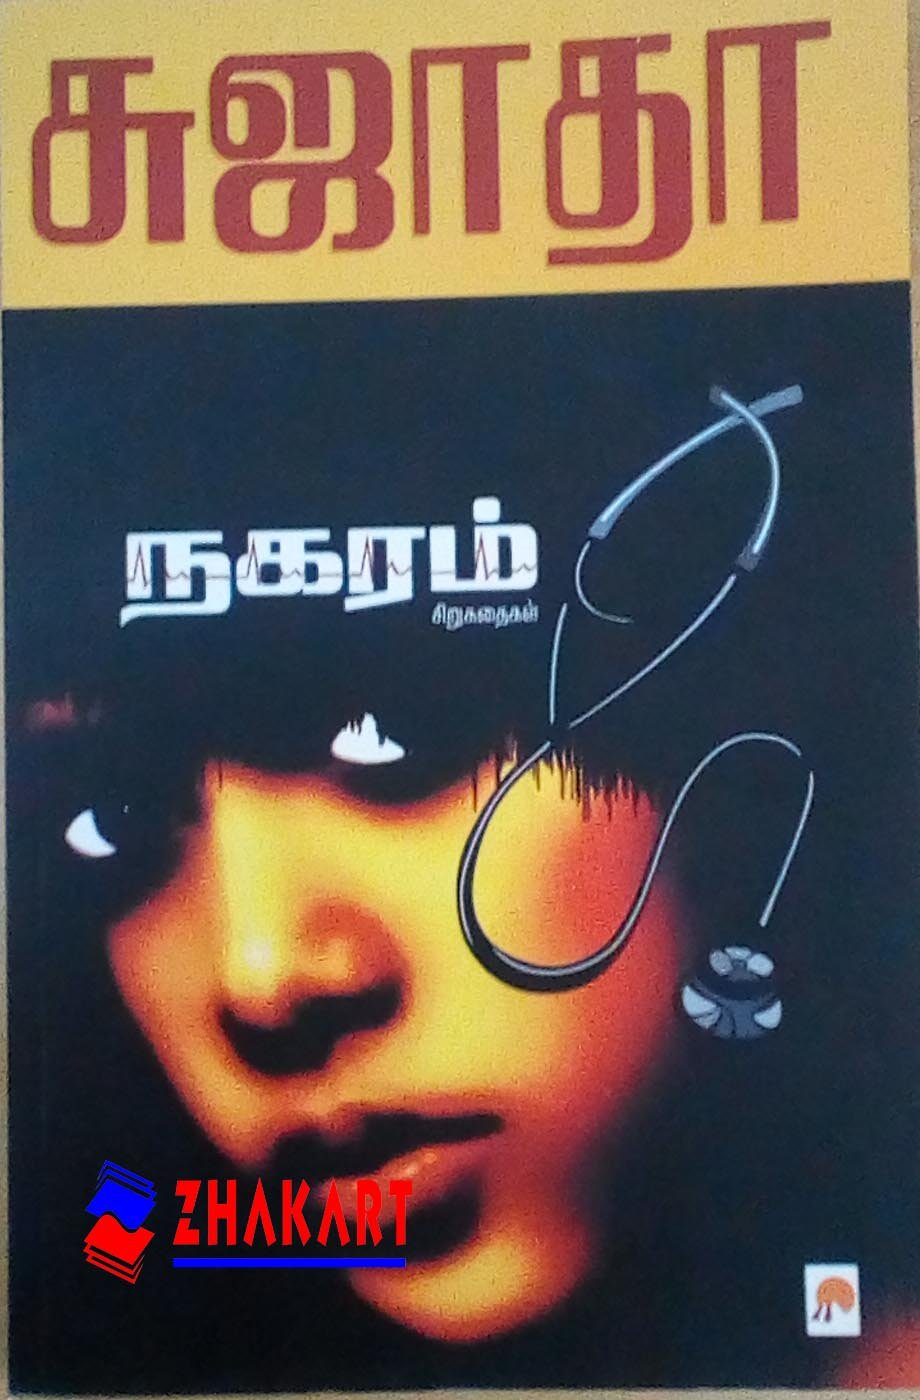 Buy Kizhakku Pathipagam books, Buy Sujatha books